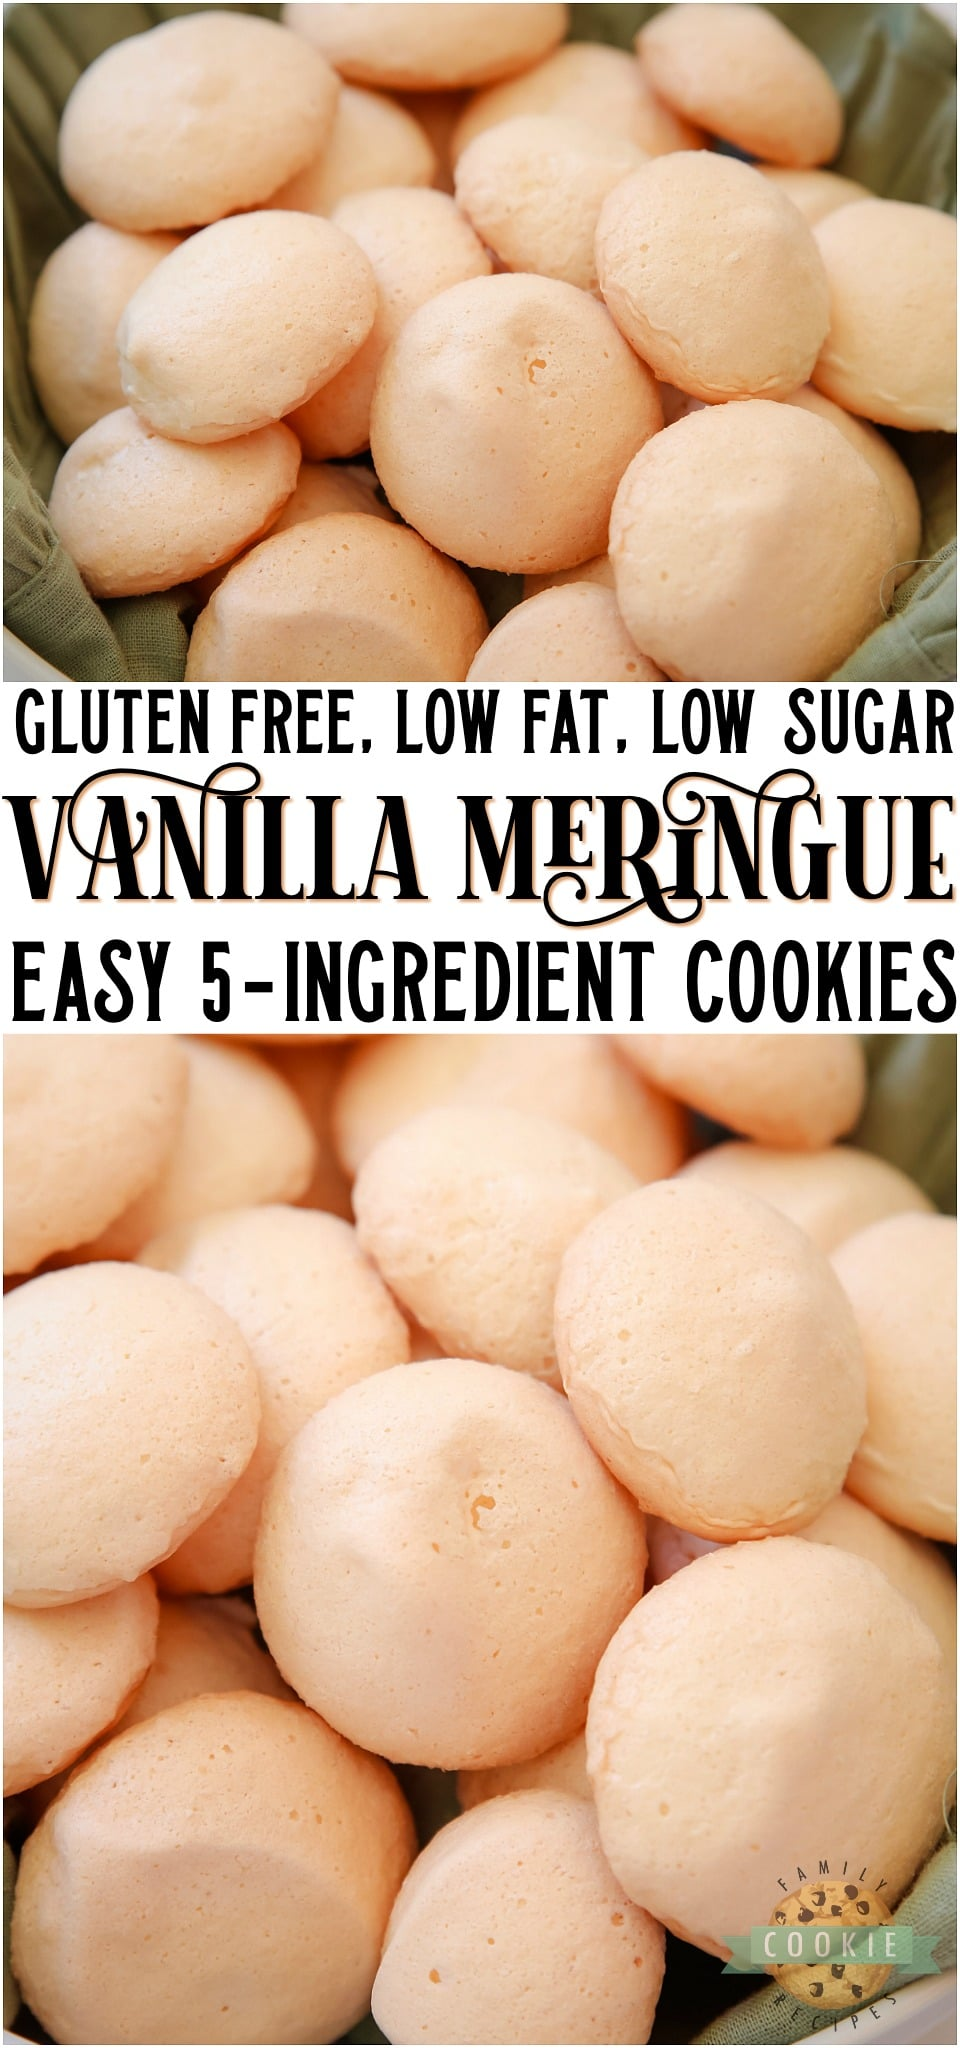 Easy Vanilla Meringue Cookies made with just 5 ingredients that you probably already have in your pantry! Simple gluten free, low fat, low sugar meringue cookie recipe flavored with vanilla extract for a sweet, crisp and chewy treat.